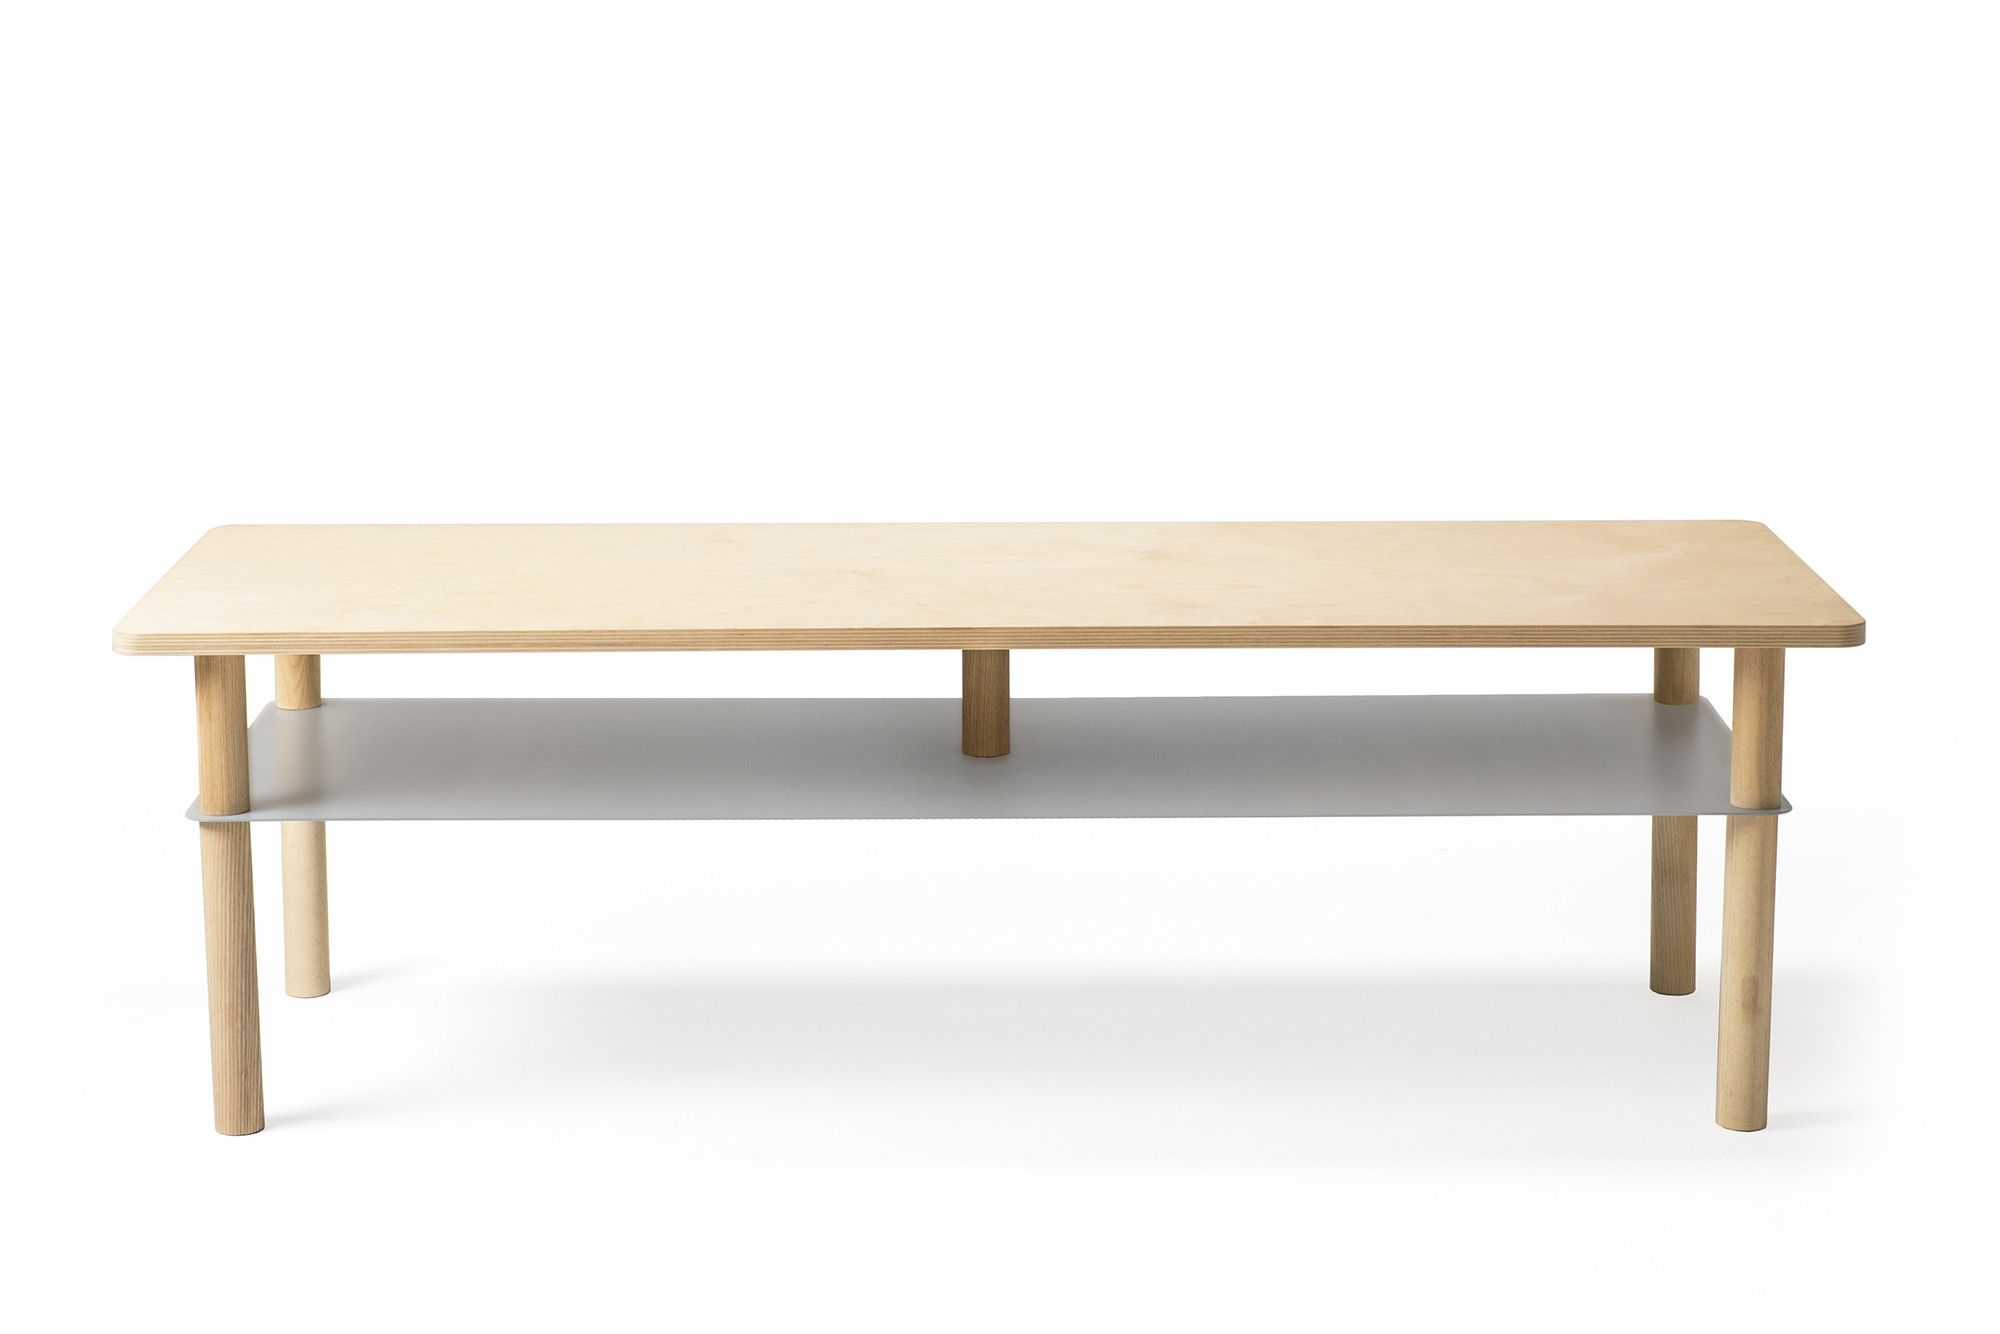 Flat Packed Well Designed Furnitire That Is Not Ikea Checkout Out This Felix Coffee Table Greycork Coffee Table Cool Coffee Tables Furniture [ 1334 x 2000 Pixel ]